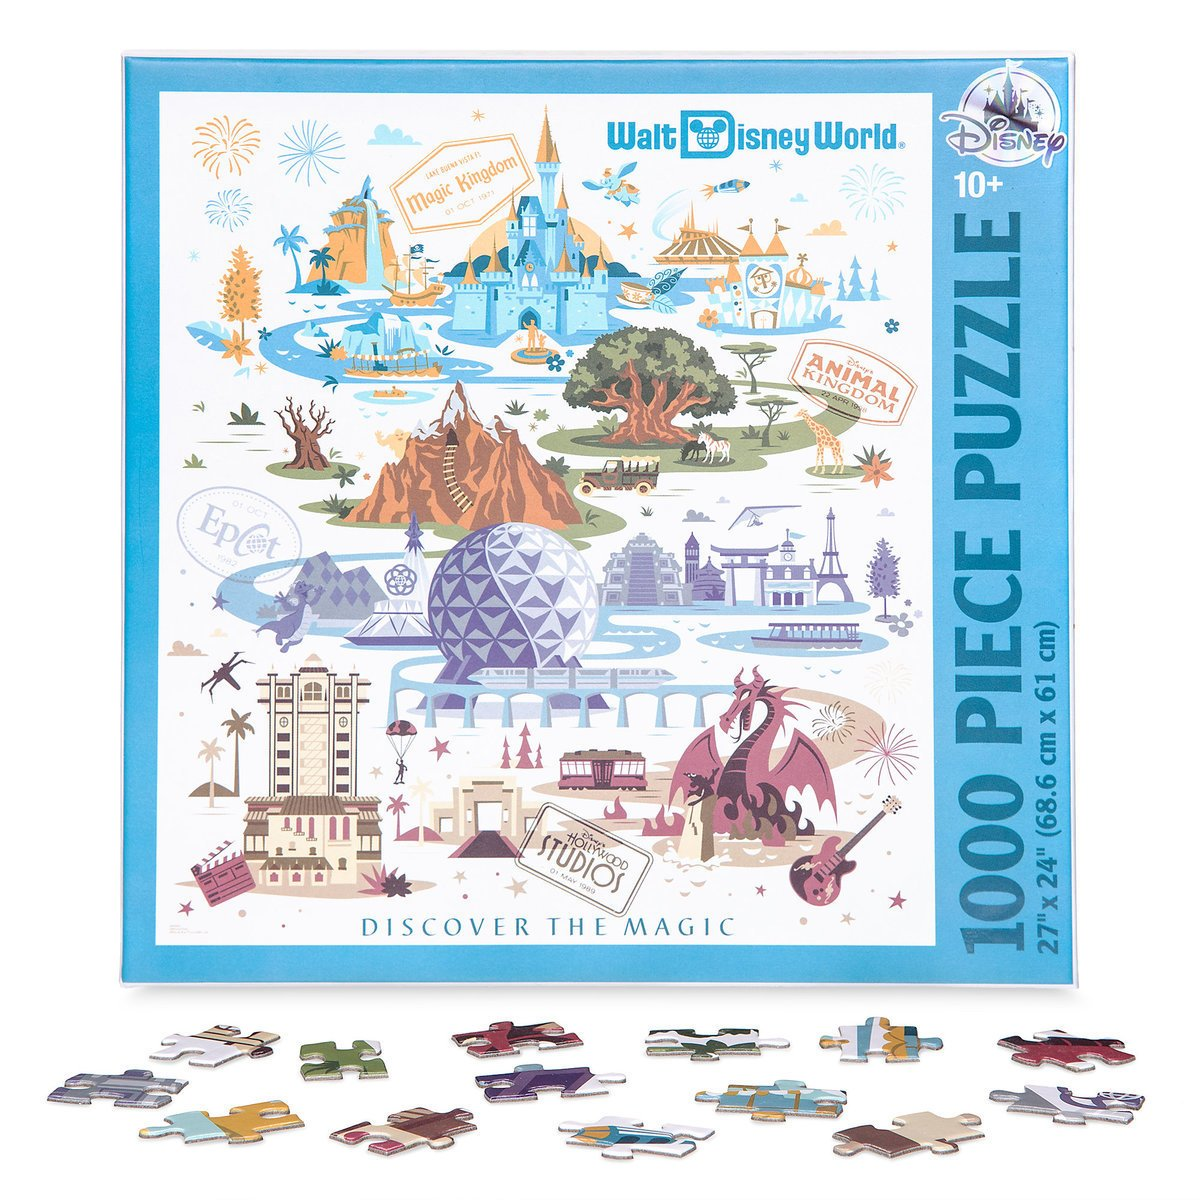 Disney Walt Disney World Resort Map Jigsaw Puzzle 1000 pcs New with Box by